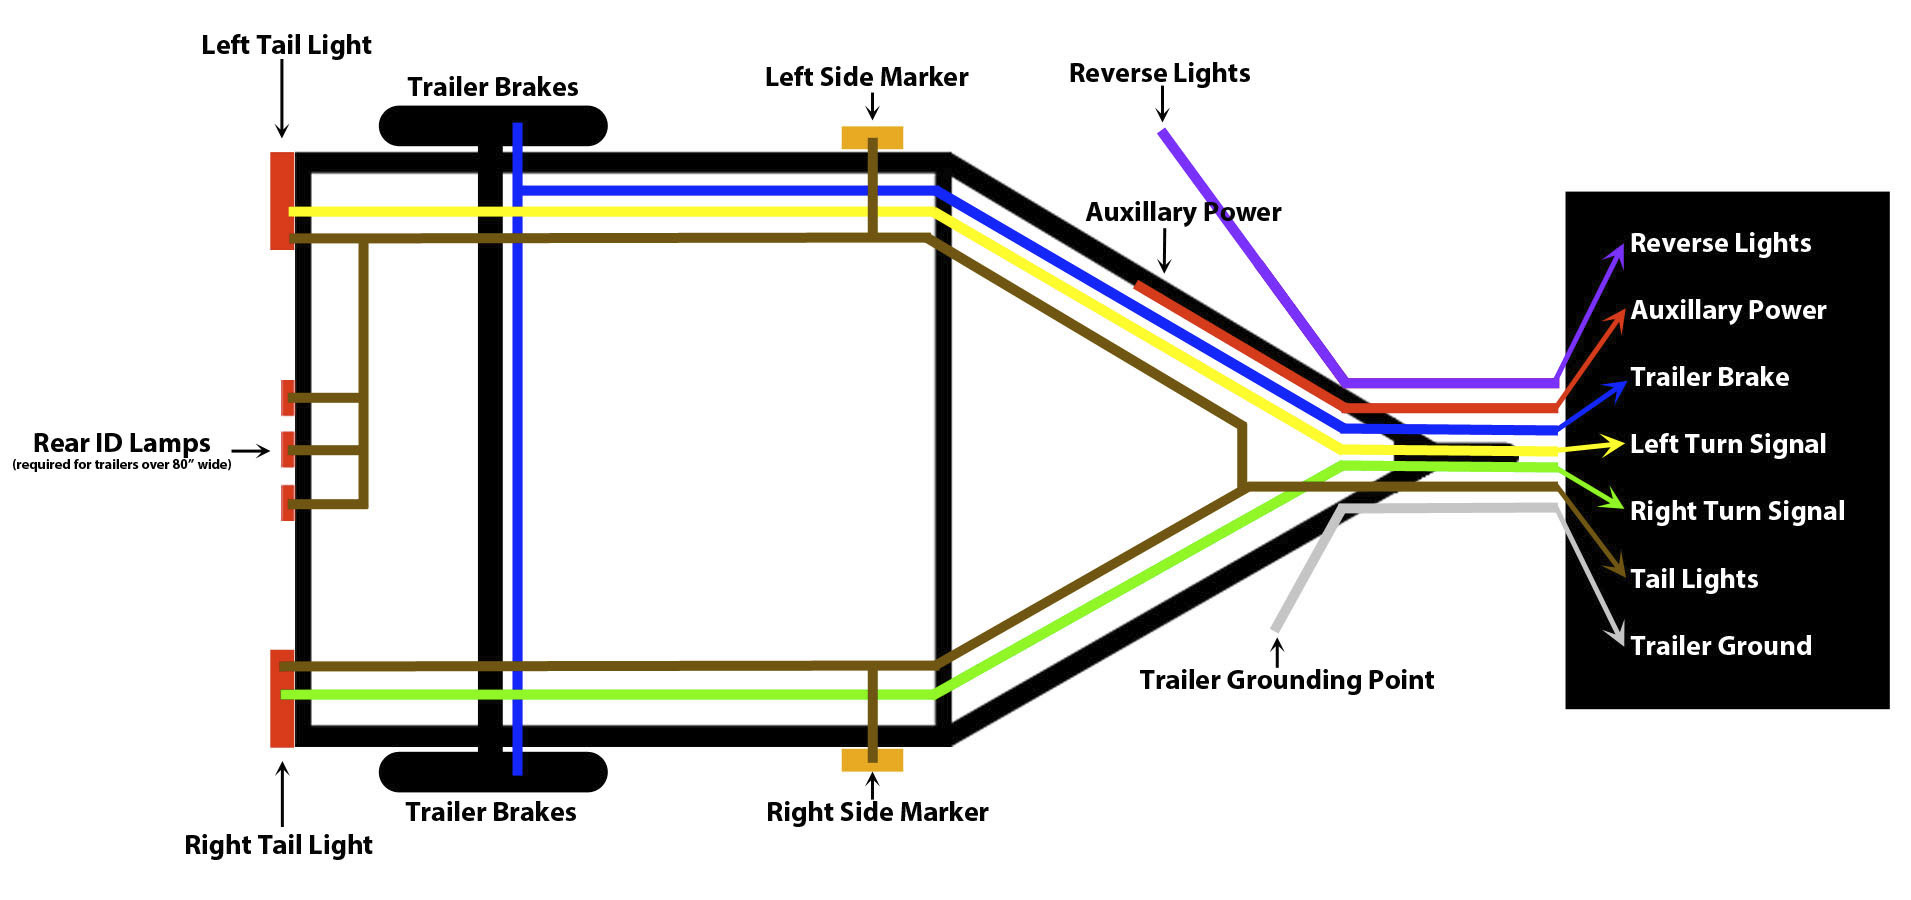 How To Wire Trailer Lights - Trailer Wiring Guide & Videos - Wiring Diagram Trailer Marker Lights